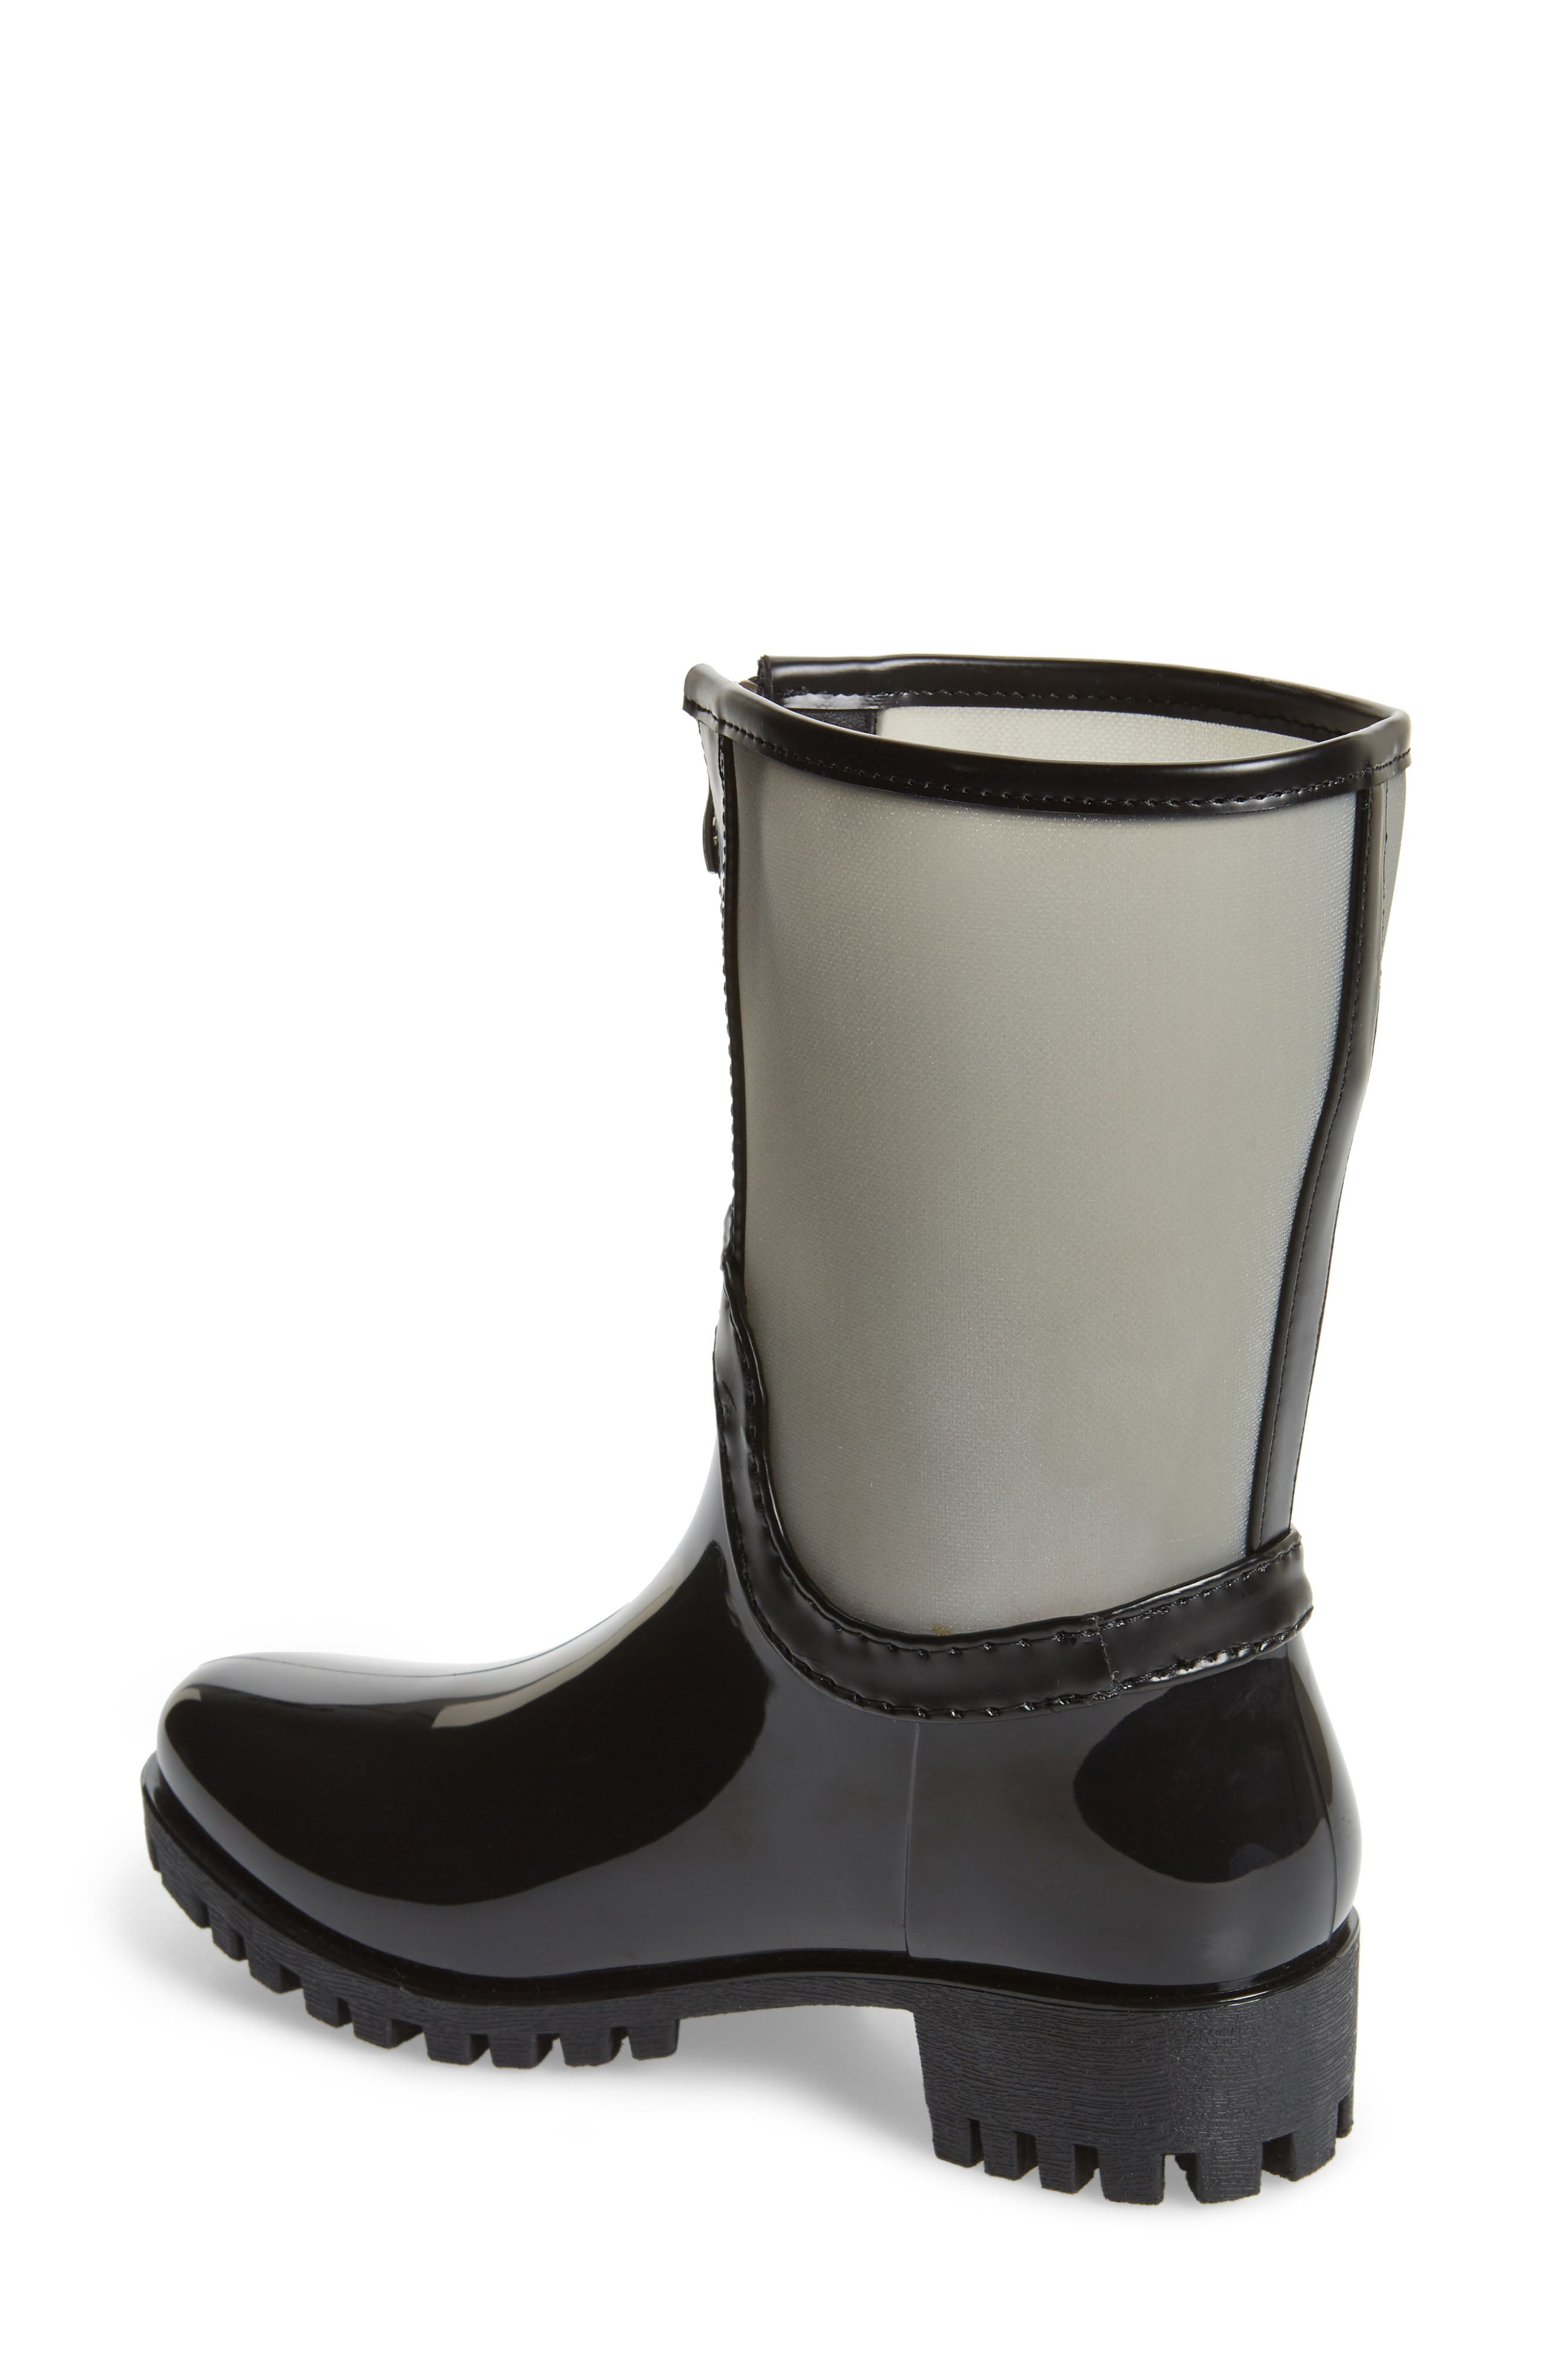 Dryden Sheer Waterproof Boot,                             Alternate thumbnail 2, color,                             GREY FABRIC